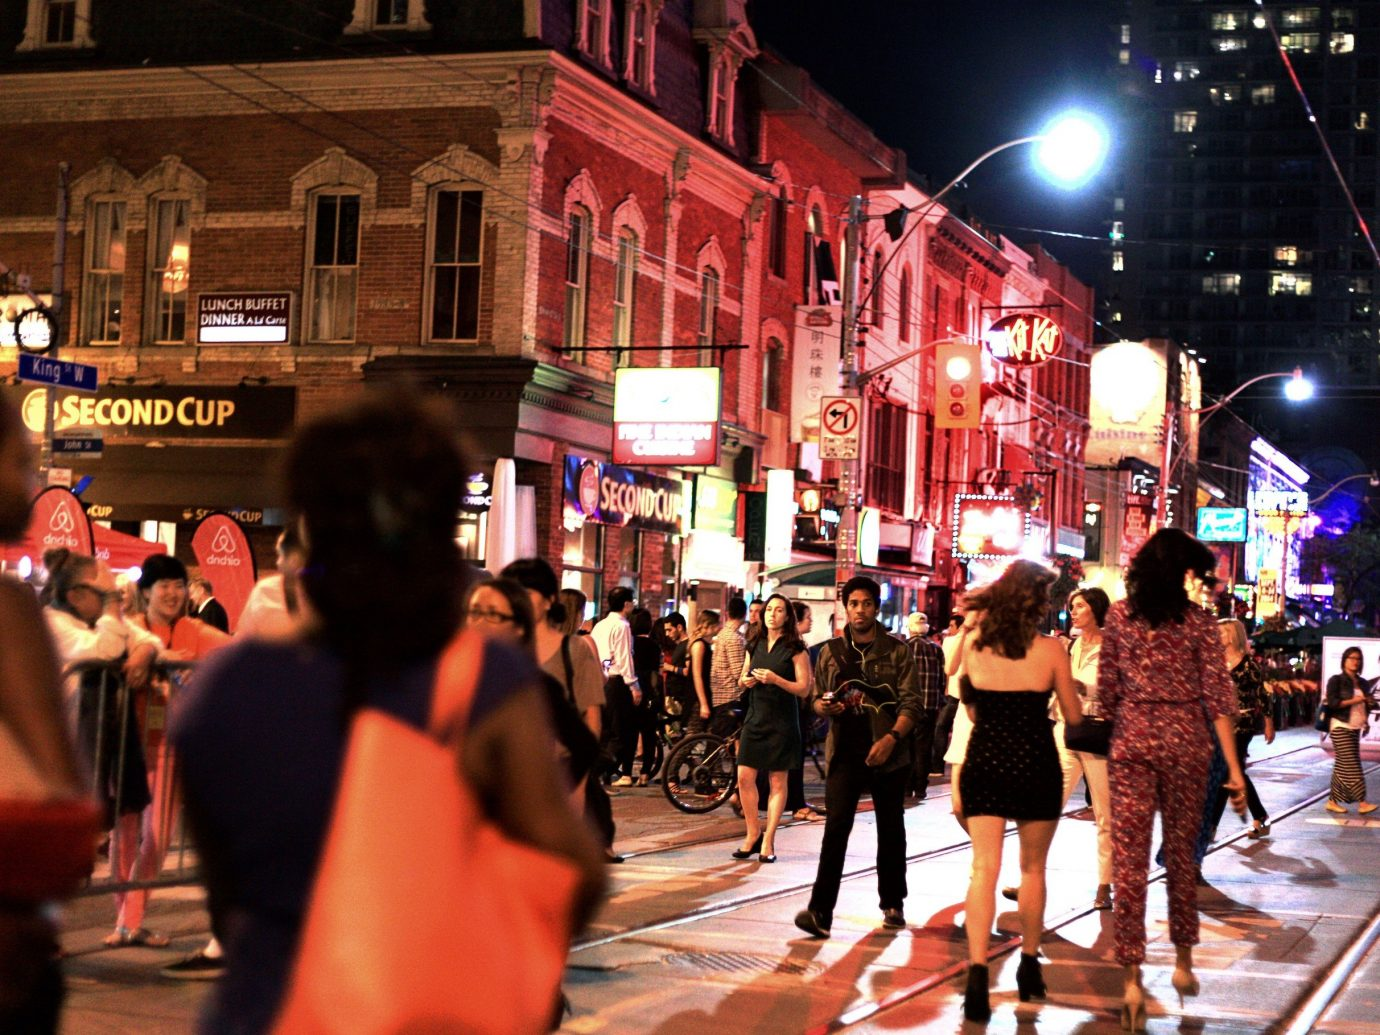 Budget building person outdoor street crowd people walking road night City group evening way pedestrian busy